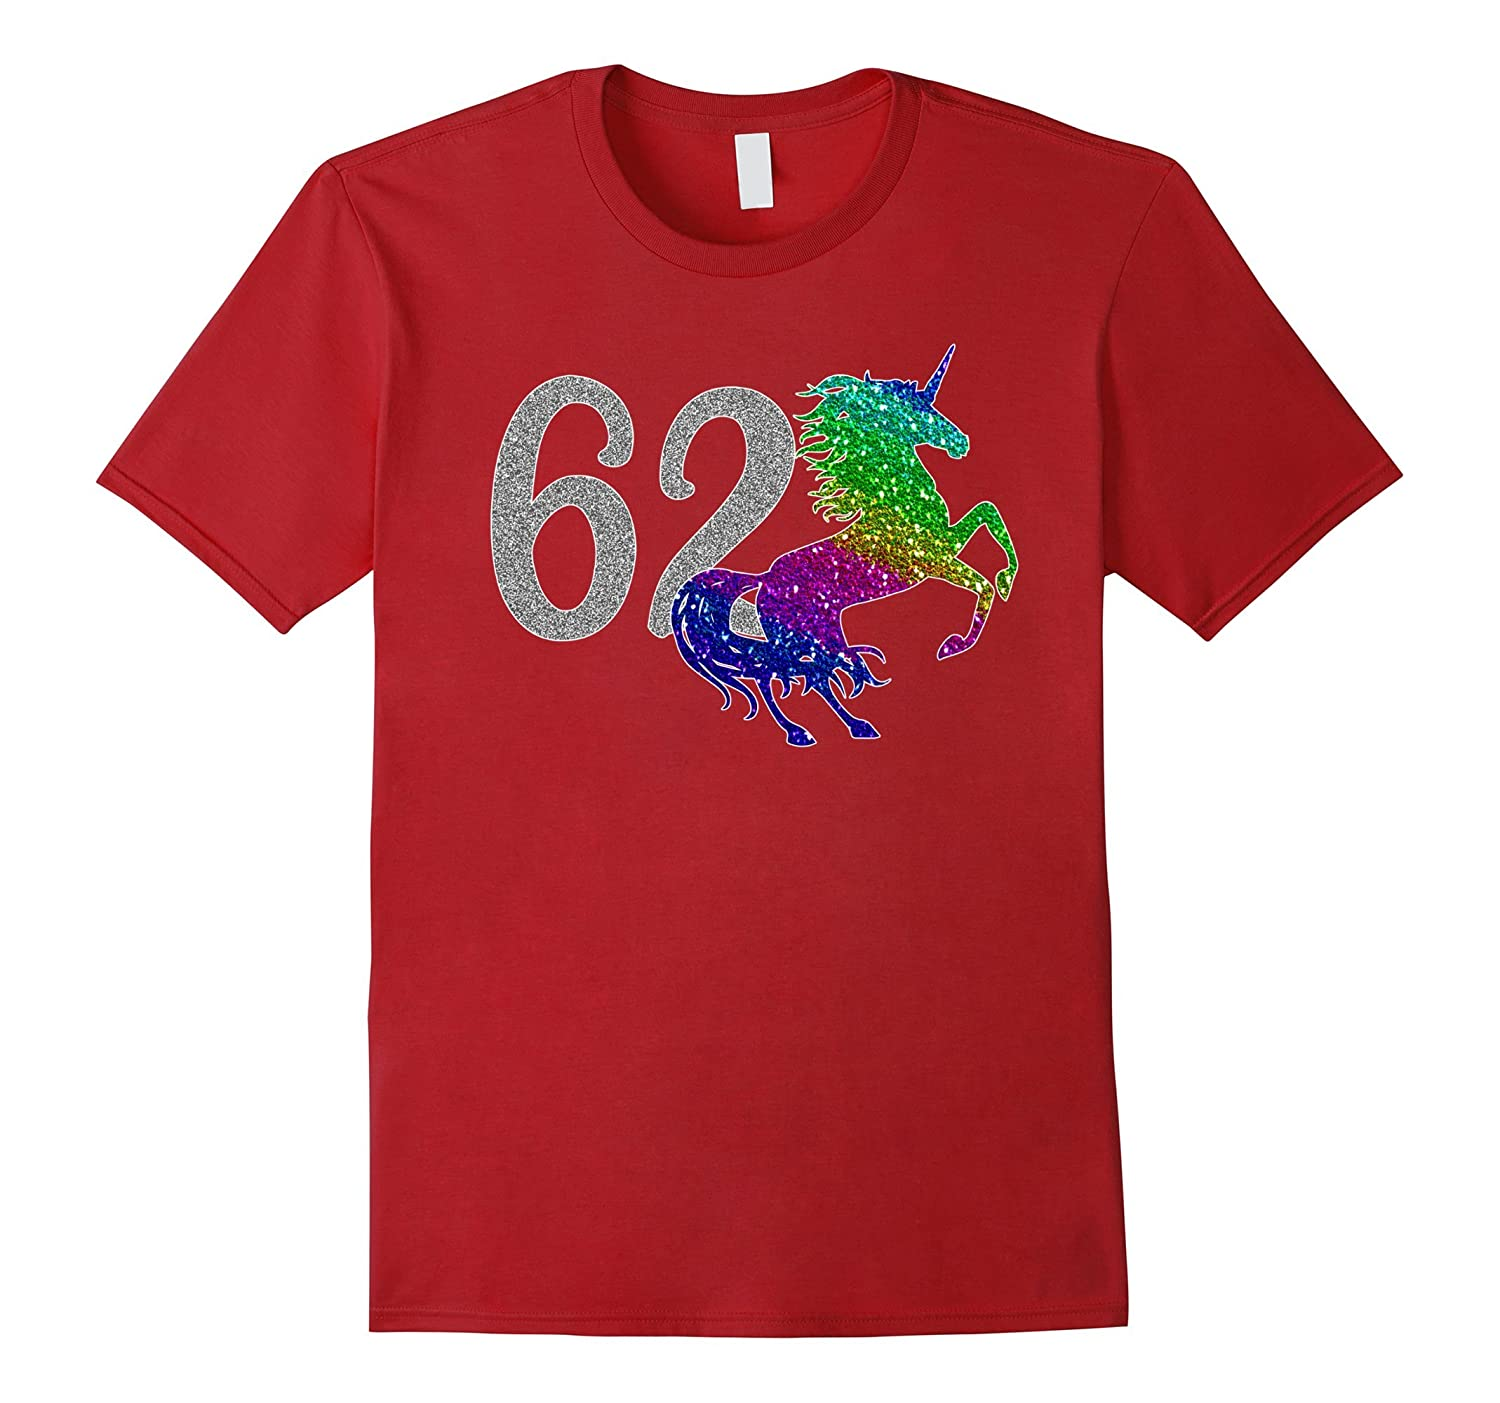 62 Year Old Shirt Unicorn 62nd Birthday TShirt